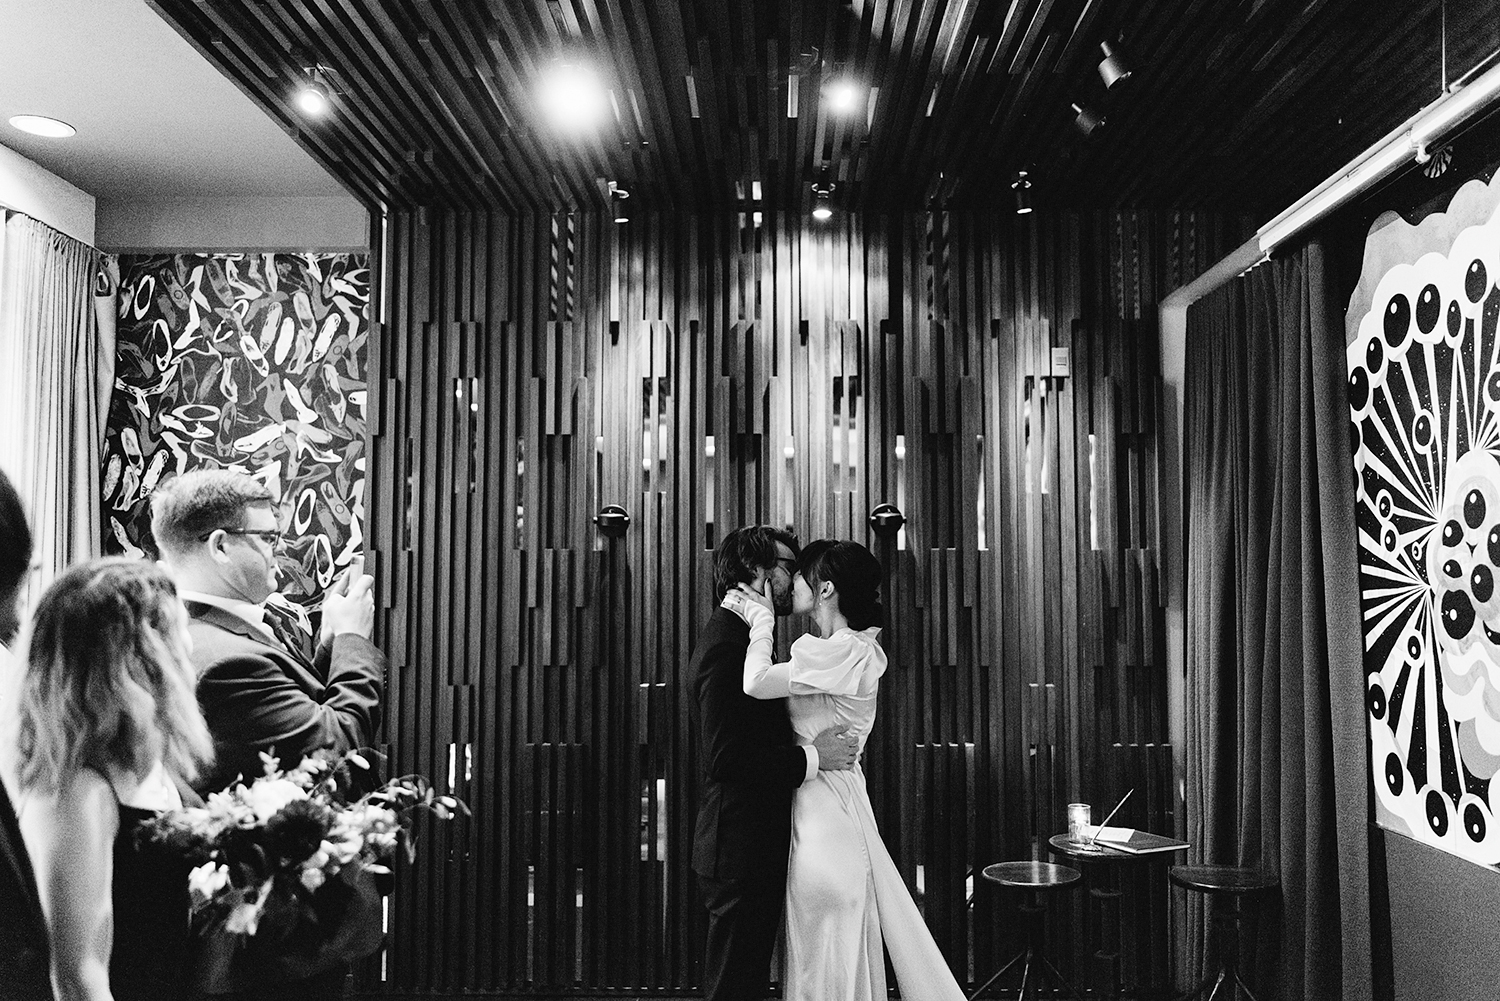 analog-film-bride-and-groom-emotional--first-kiss-ceremony-space-moody-candlelit-cinematic-Toronto-Elopement-at-the-Drake-Hotel-pop-up-Torontos-Best-wedding-photographers-candid-documentary-photojournalistic.jpg